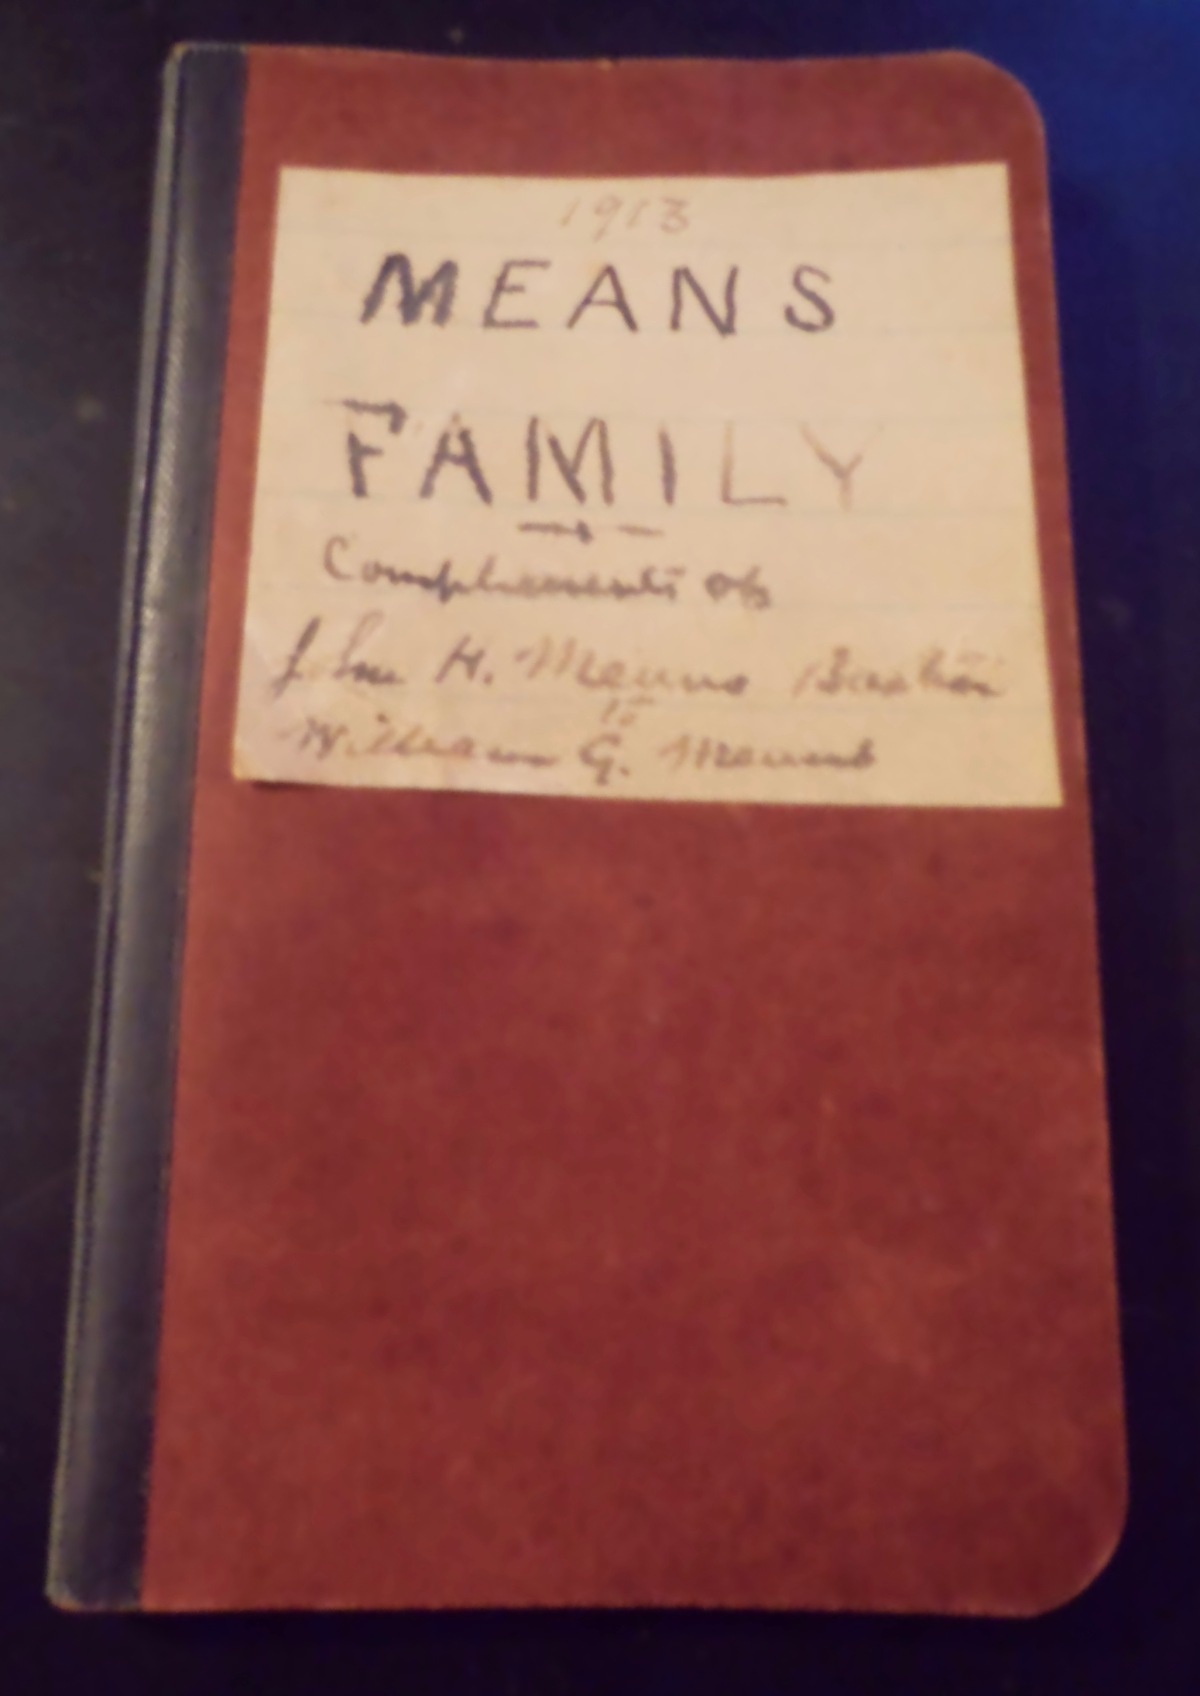 1913. The Means Family